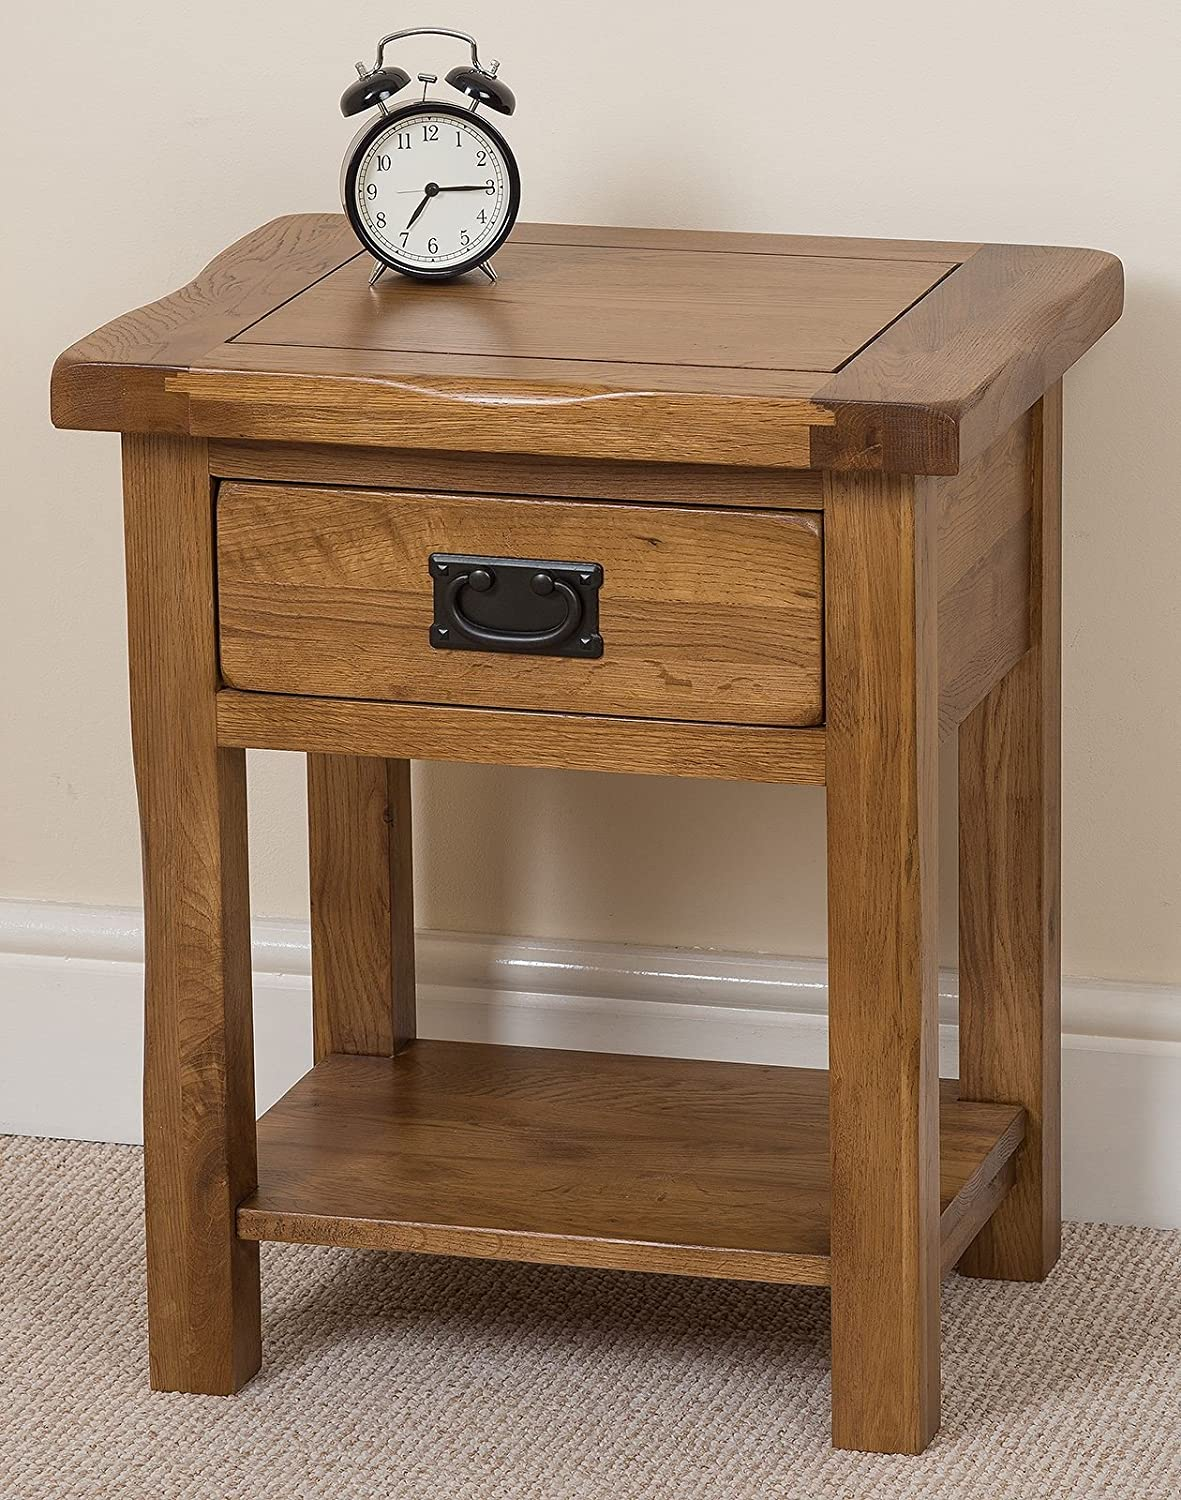 Exceptionnel Cotswold Solid Oak Lamp/Side Table, (61 X 41 X 50 Cm): Amazon.co.uk:  Kitchen U0026 Home